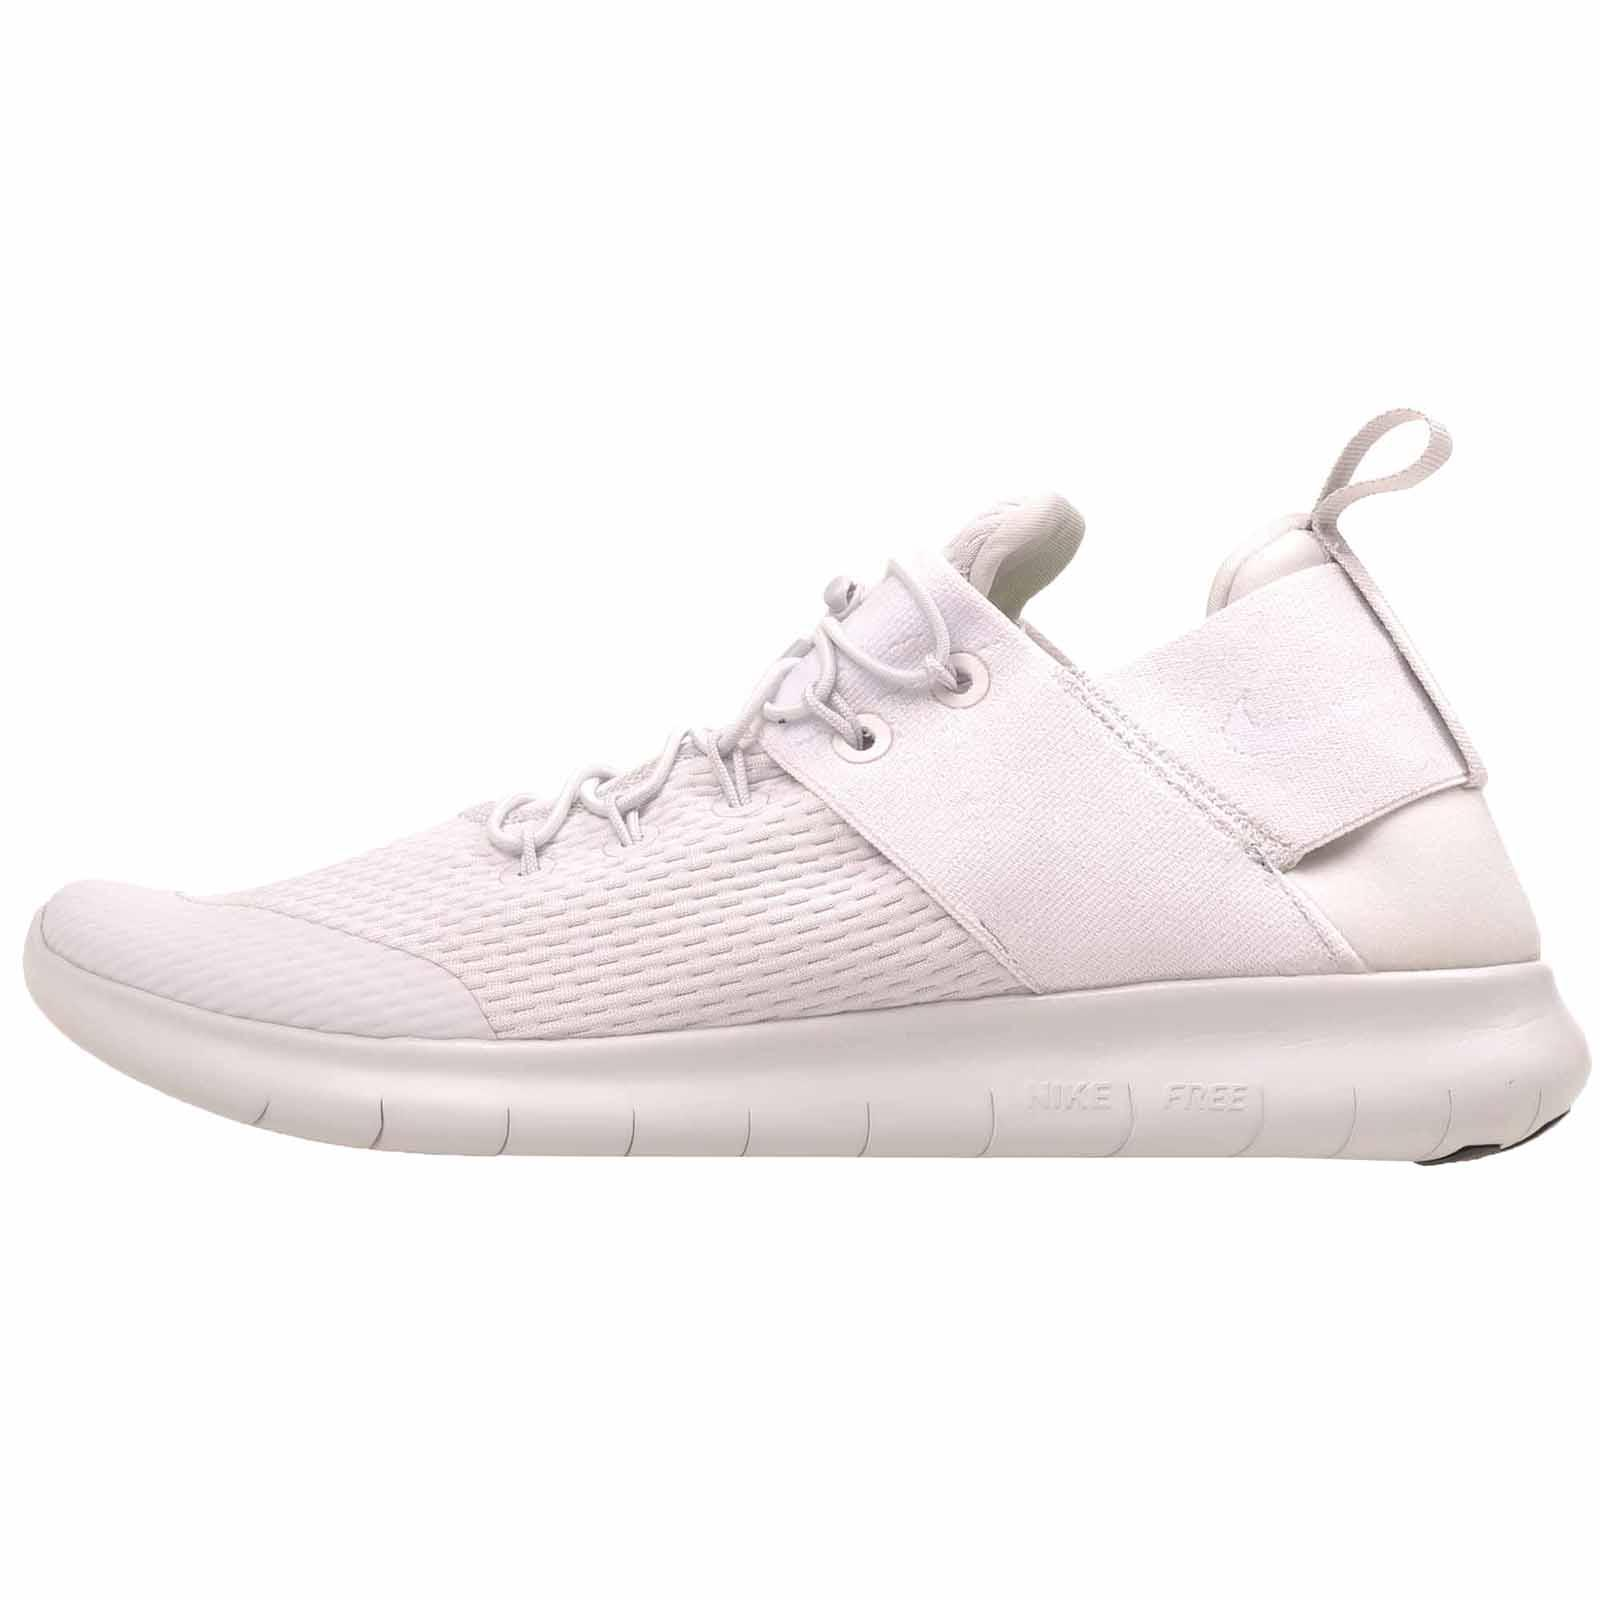 1aca6d7663f2f Nike Free Rn Commuter 2017 Running Mens Shoes White Grey 880841-007(actual  shoes more gray than white)